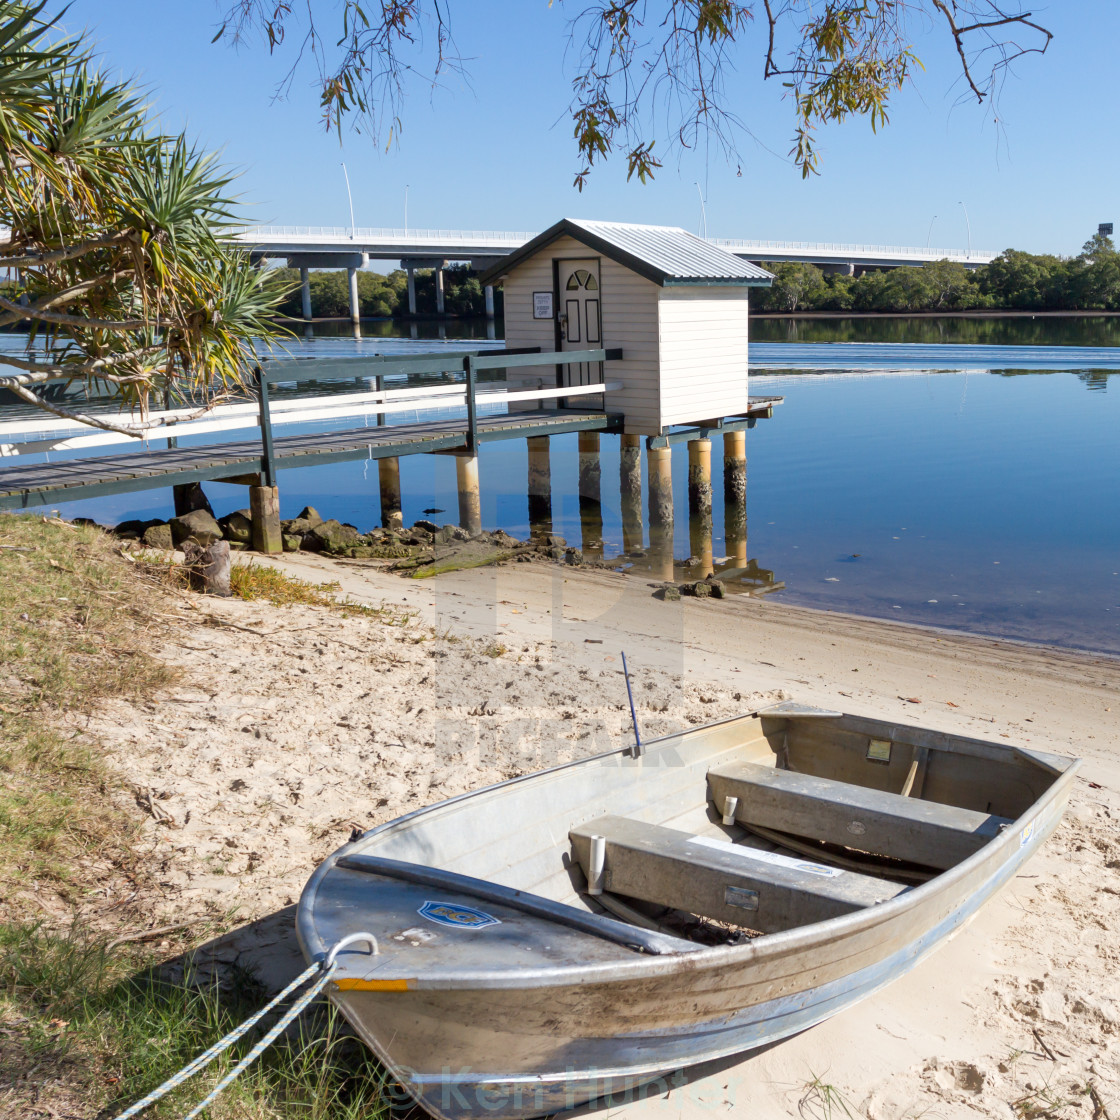 """Fishing cabin on Jetty with boat beached"" stock image"